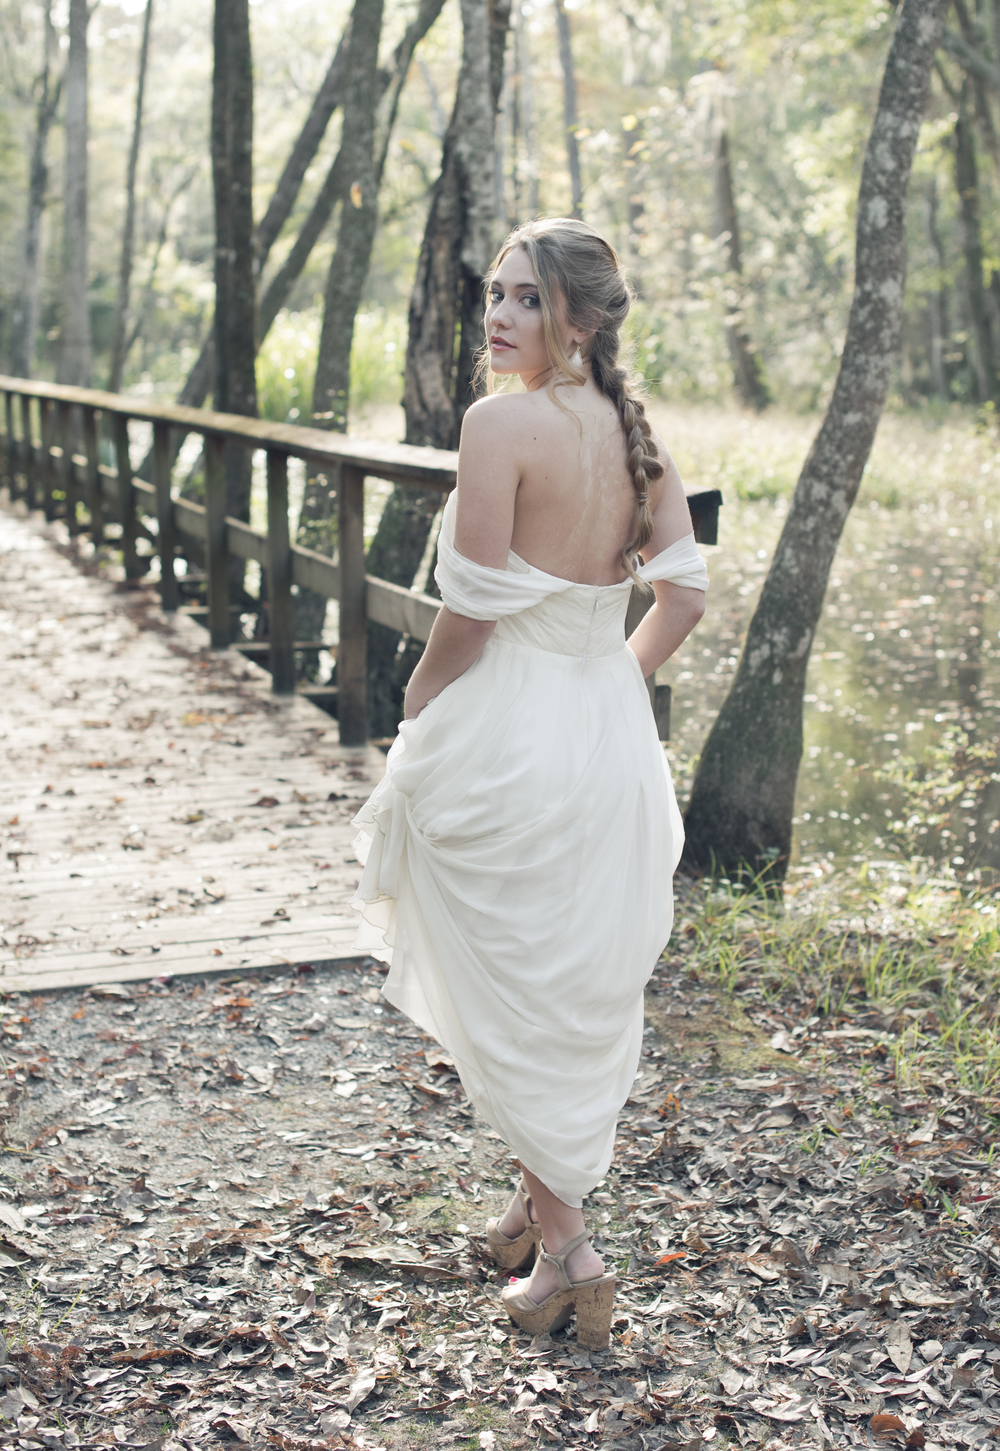 5-D-Photography-lafayette-sarah-seven-off-the-shoulder-wedding-dress-Gardenias-hilton-head- Ogeechee-Canal-Trail-ivory-and-beau-bridal-boutique-savannah-wedding-dresses-savannah-bridal-boutique-savannah-weddings-hilton-head-bridal-8.jpg